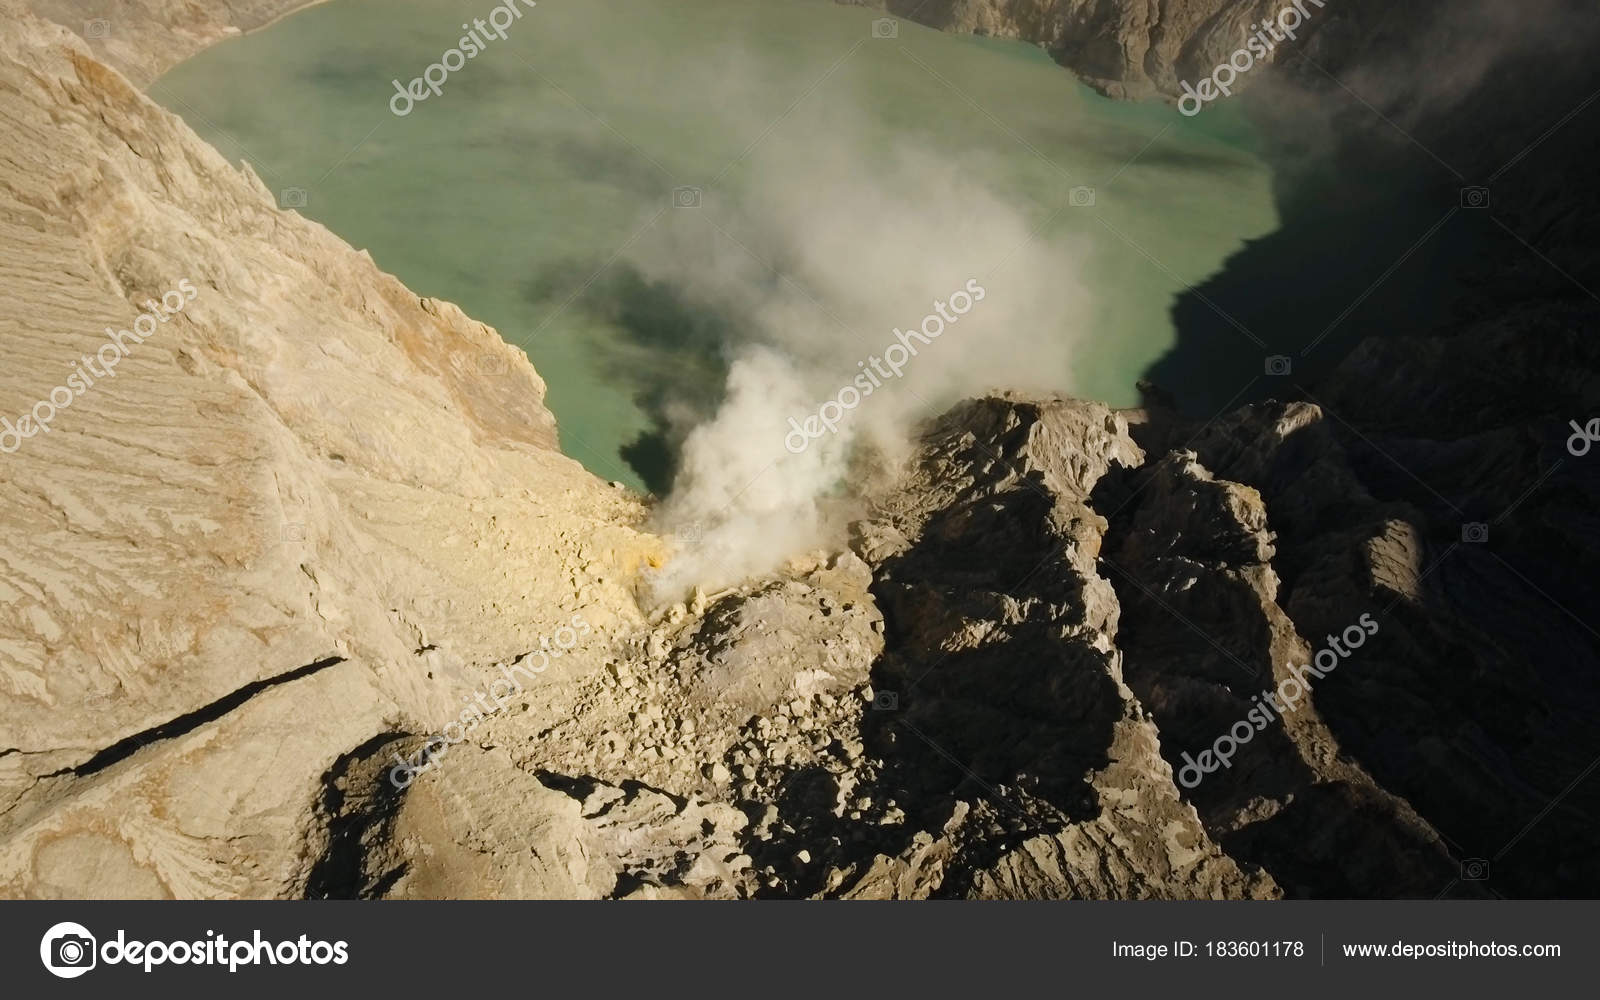 volcanic crater where sulfur is mined stock photo alexpunker